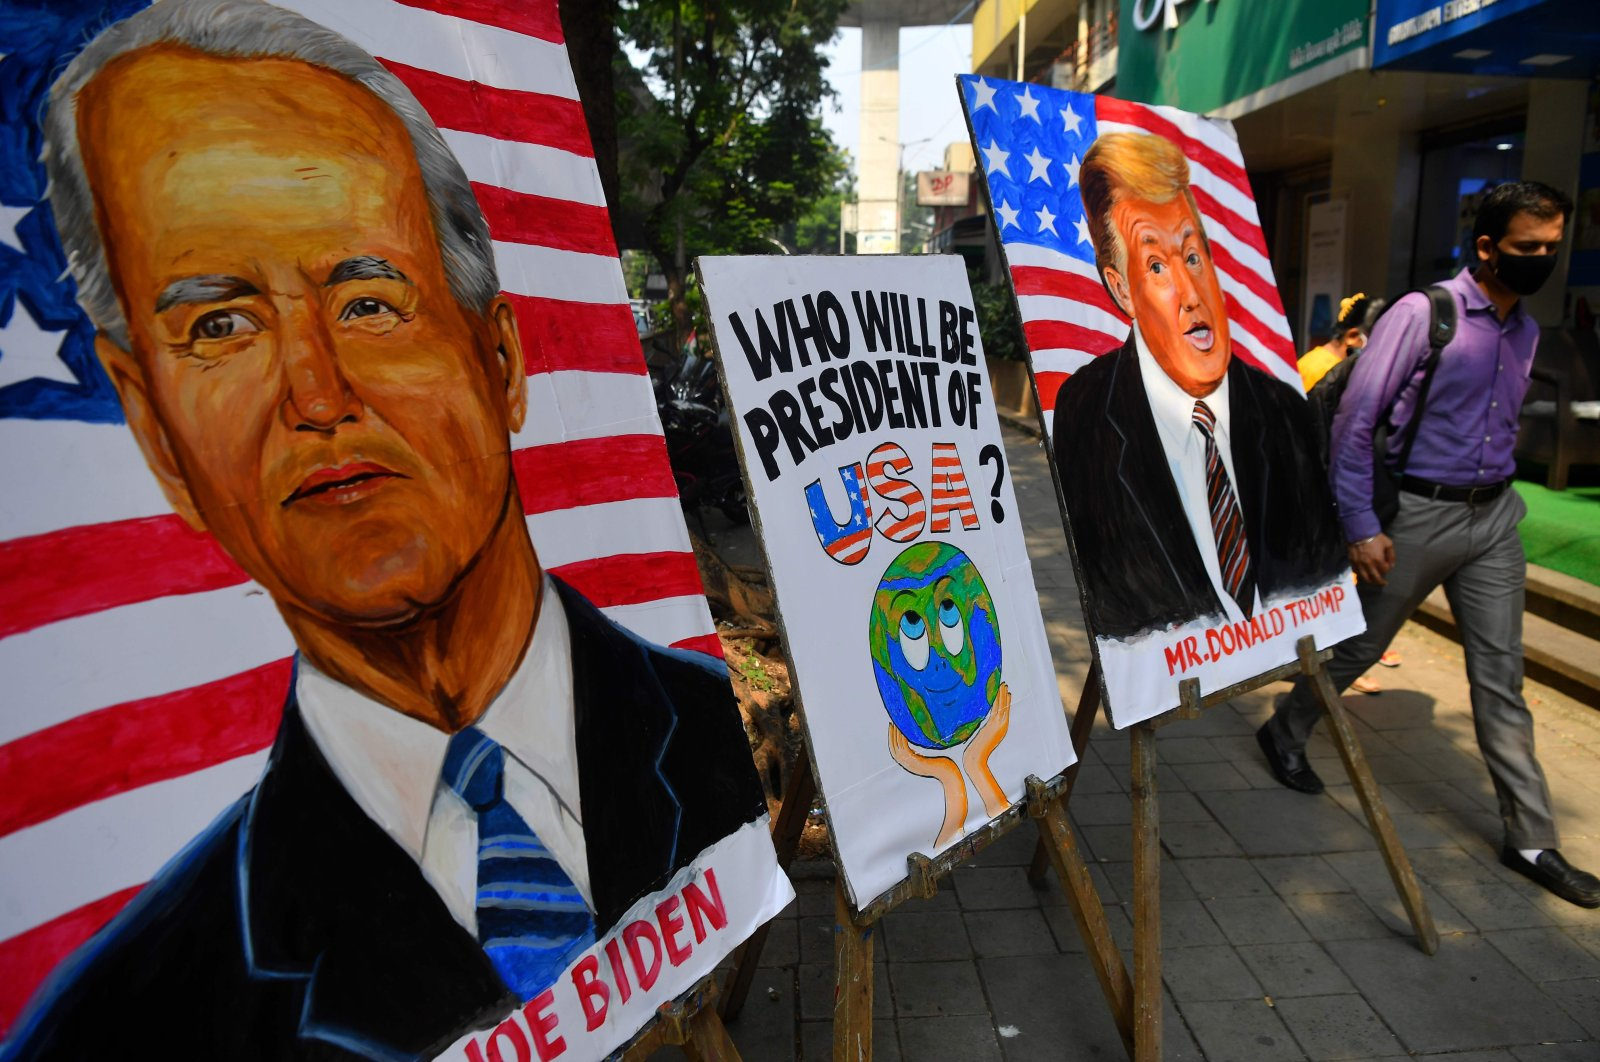 A commuter walks past the painted images of U.S. President Donald Trump and Democratic presidential candidate and former Vice President Joe Biden ahead of the upcoming U.S. presidential elections, outside an art school in Mumbai, India, Oct. 29, 2020. (AFP)